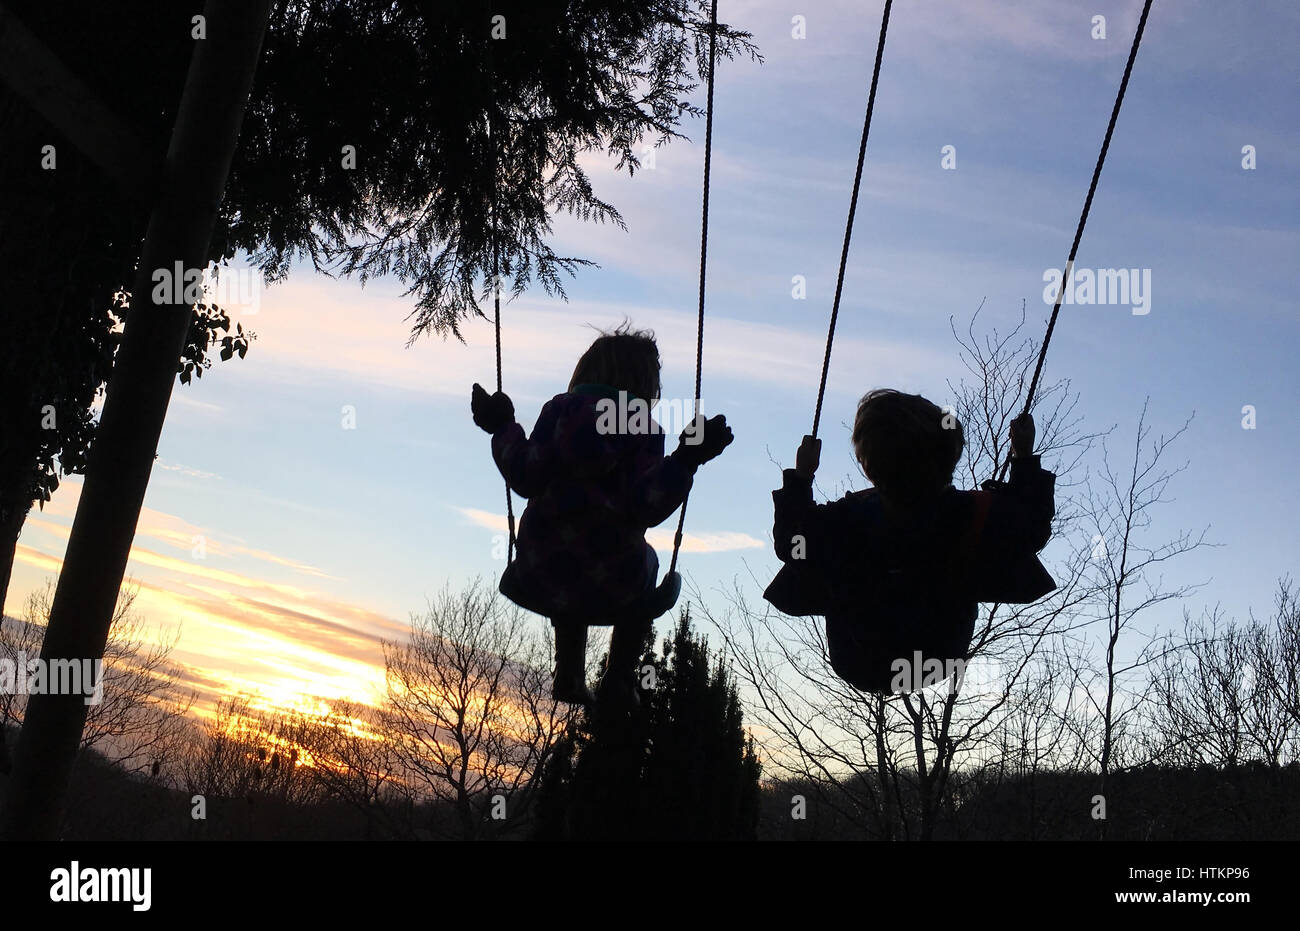 Two children on swings silhouetted against an evening sky - Stock Image